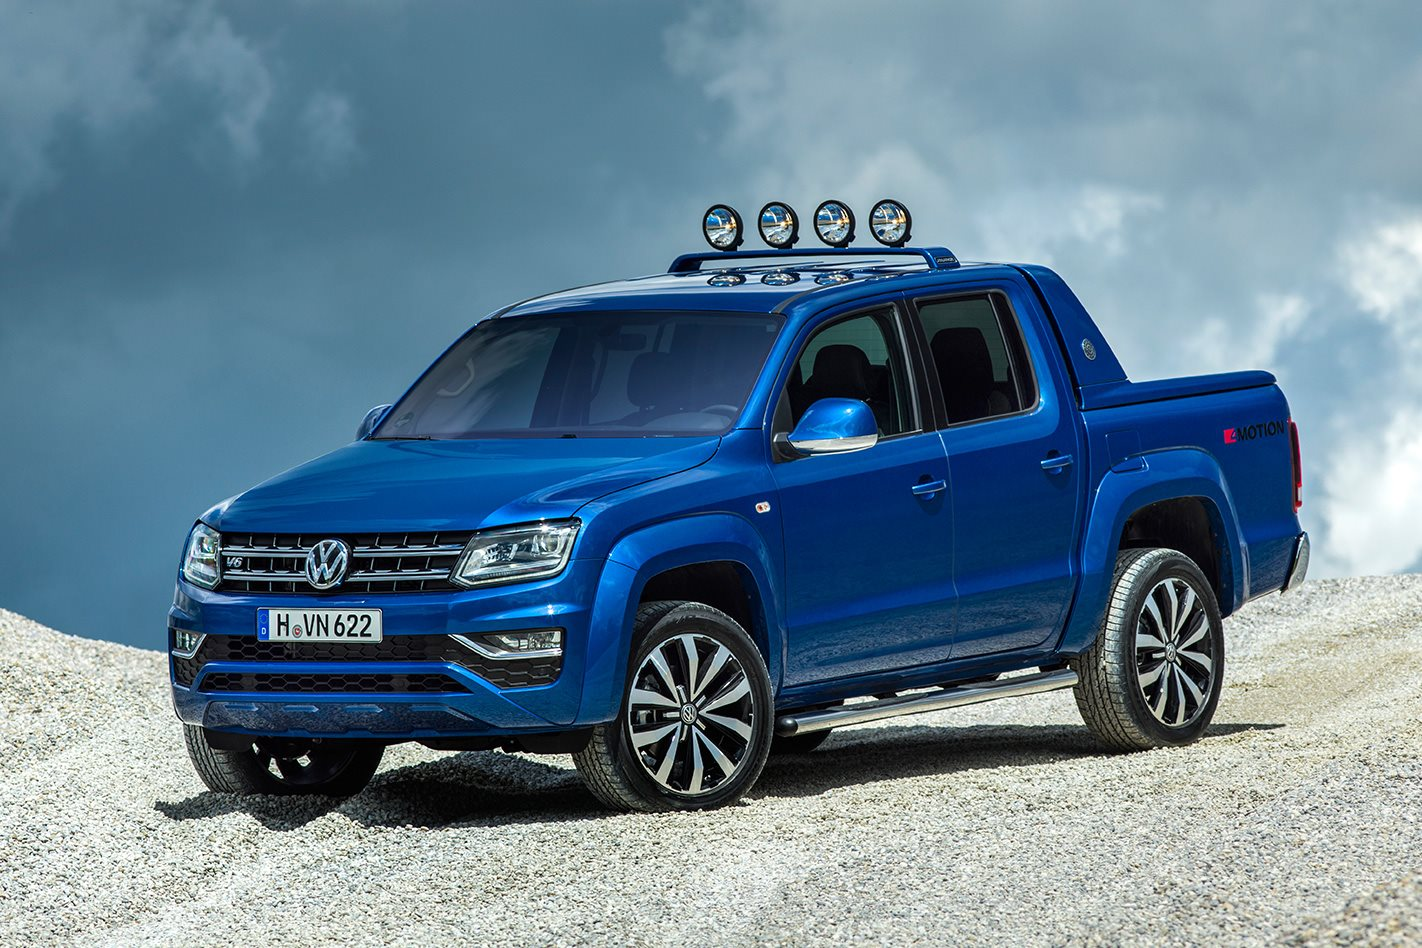 volkswagen amarok aventura v6tdi review 4x4 australia. Black Bedroom Furniture Sets. Home Design Ideas